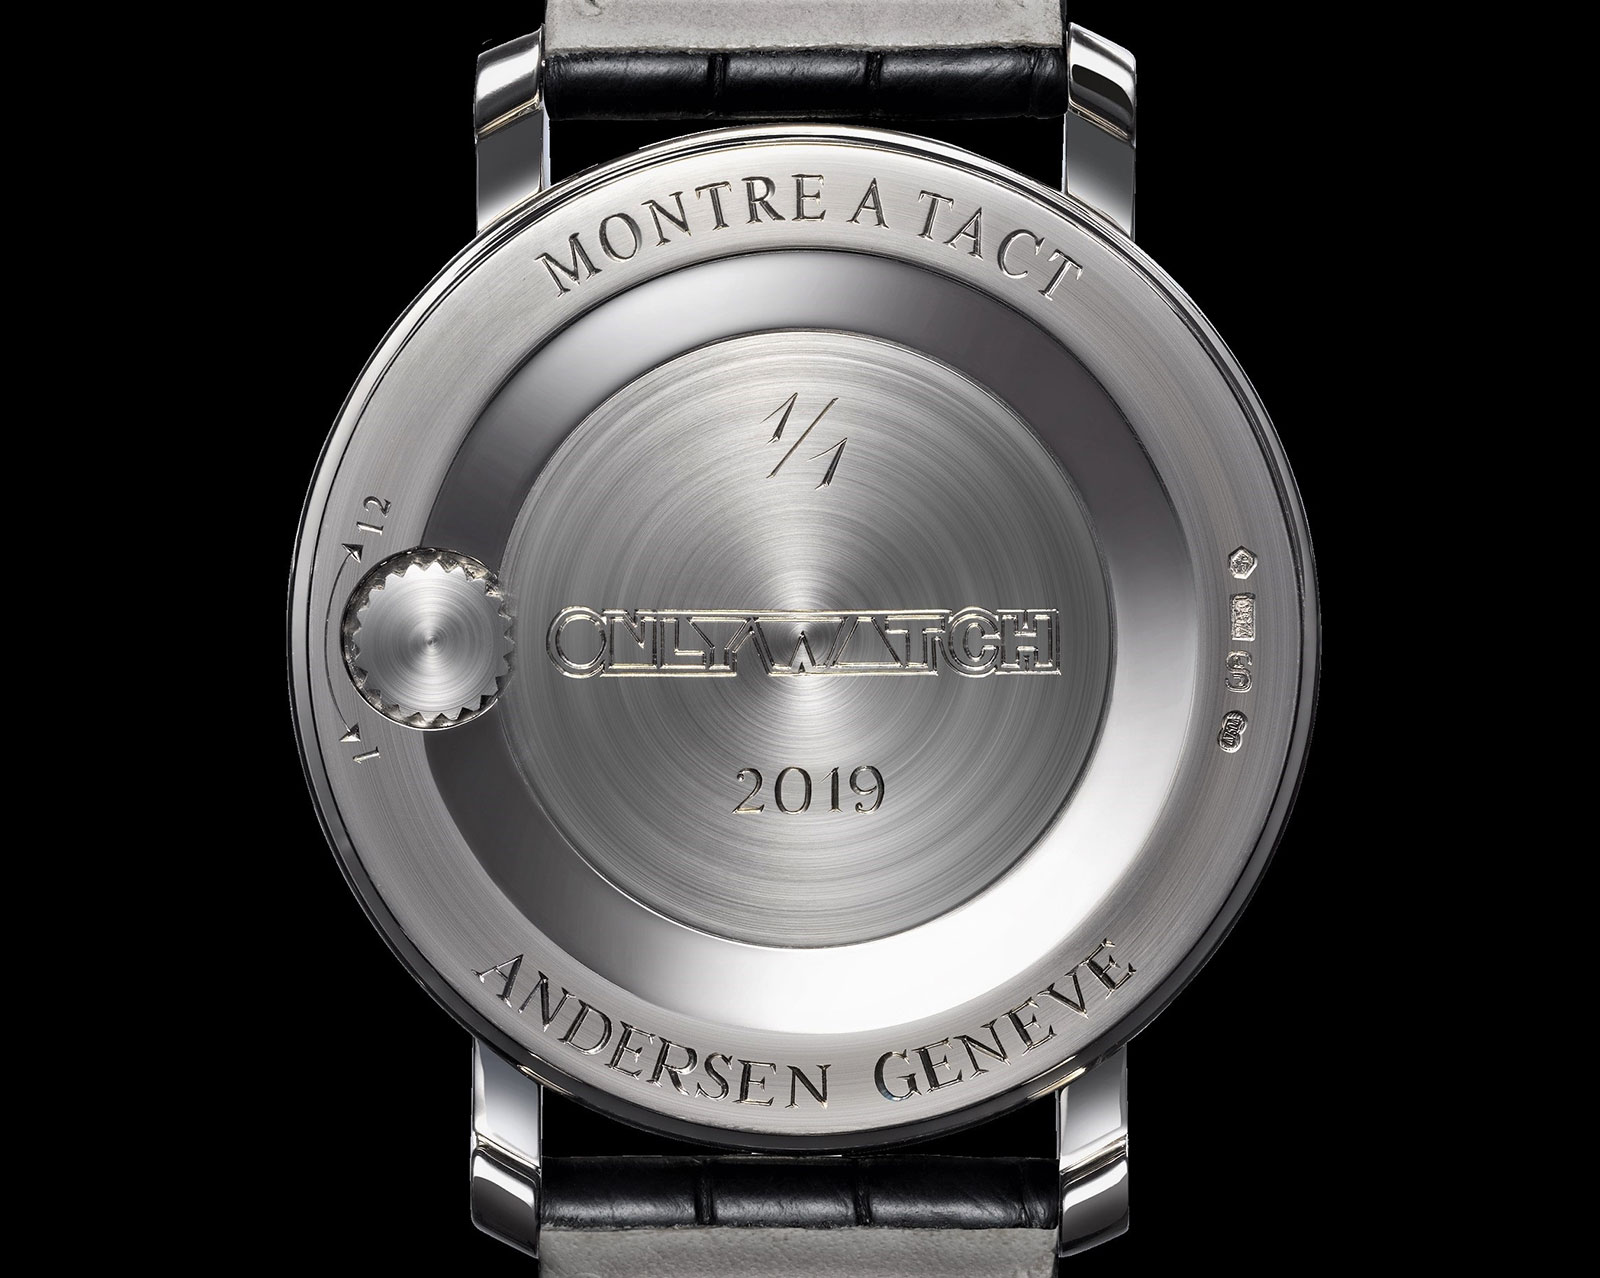 Andersen montre tact only watch 2019 9